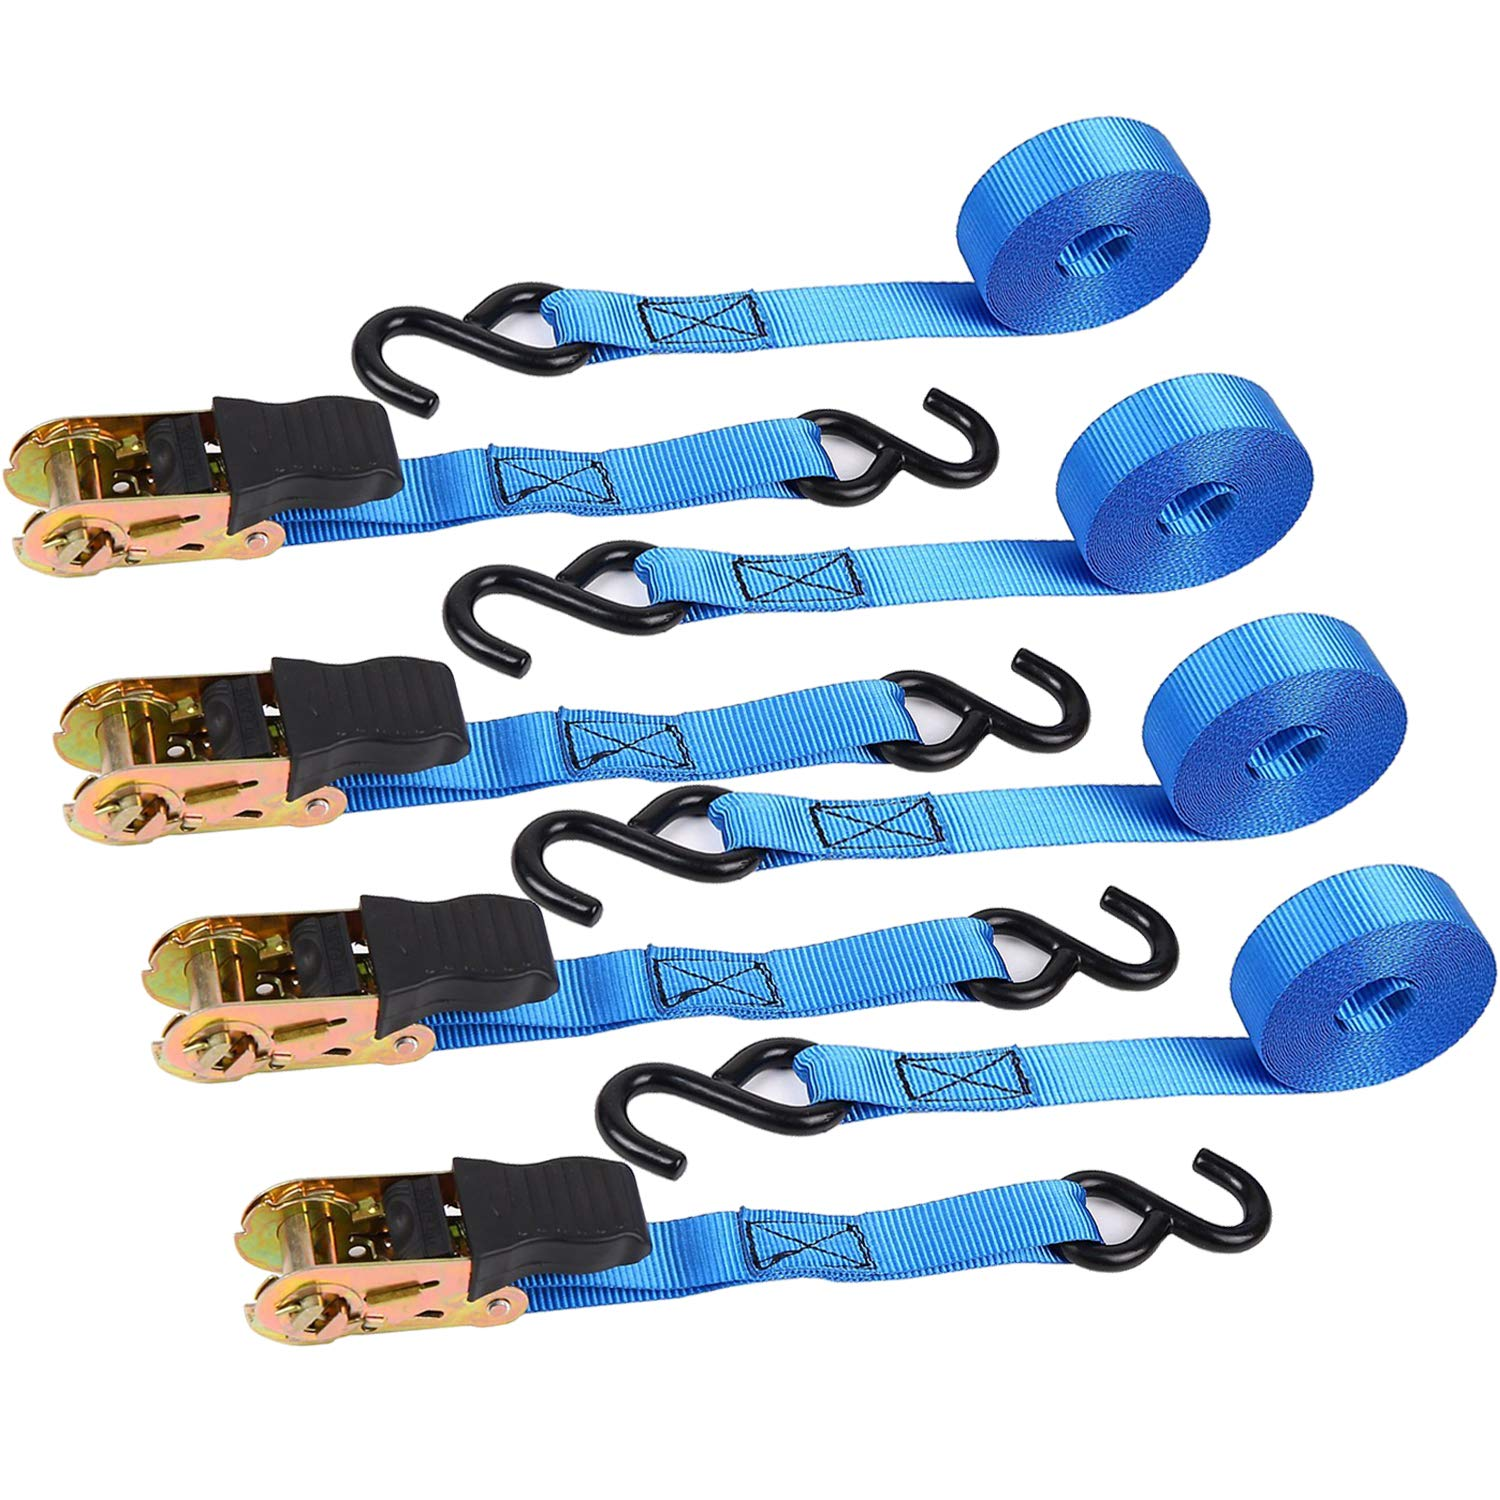 500 Lbs Loatd Cap with 1500lb Breaking Limit Motorcycle 15 Ft Ohuhu 8 Pack Blue Ratchet Strap Cargo Straps for Lawn Equipment Moving Appliances Ratchet Tie Downs Logistic Straps